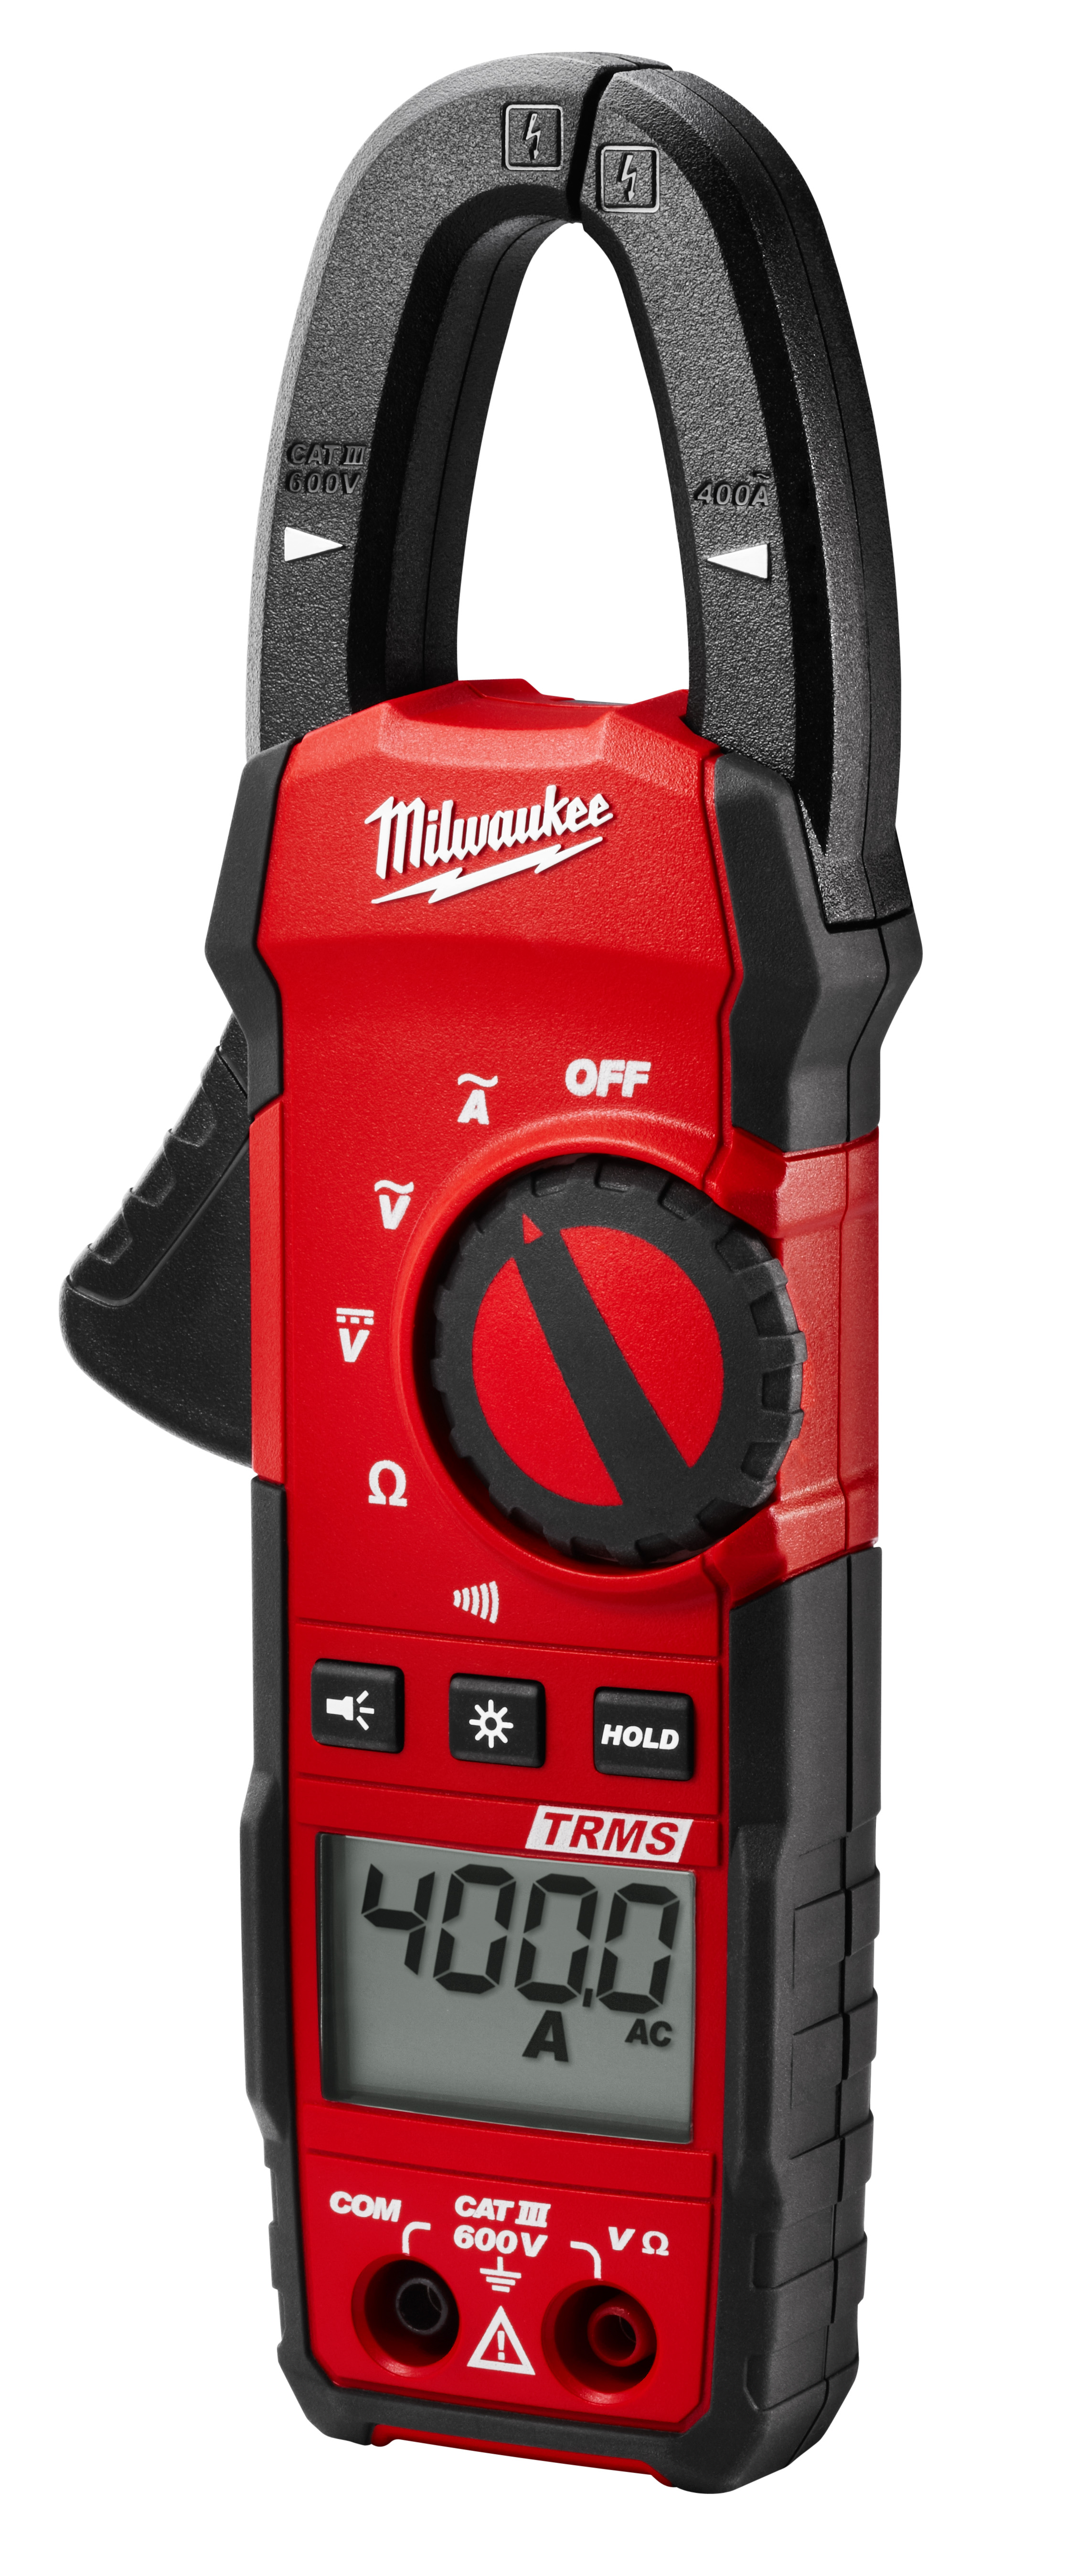 Milwaukee® 2235-20NST Clamp Meter Kit, 400 Ohm, 1 in Jaw, Backlit LCD Display